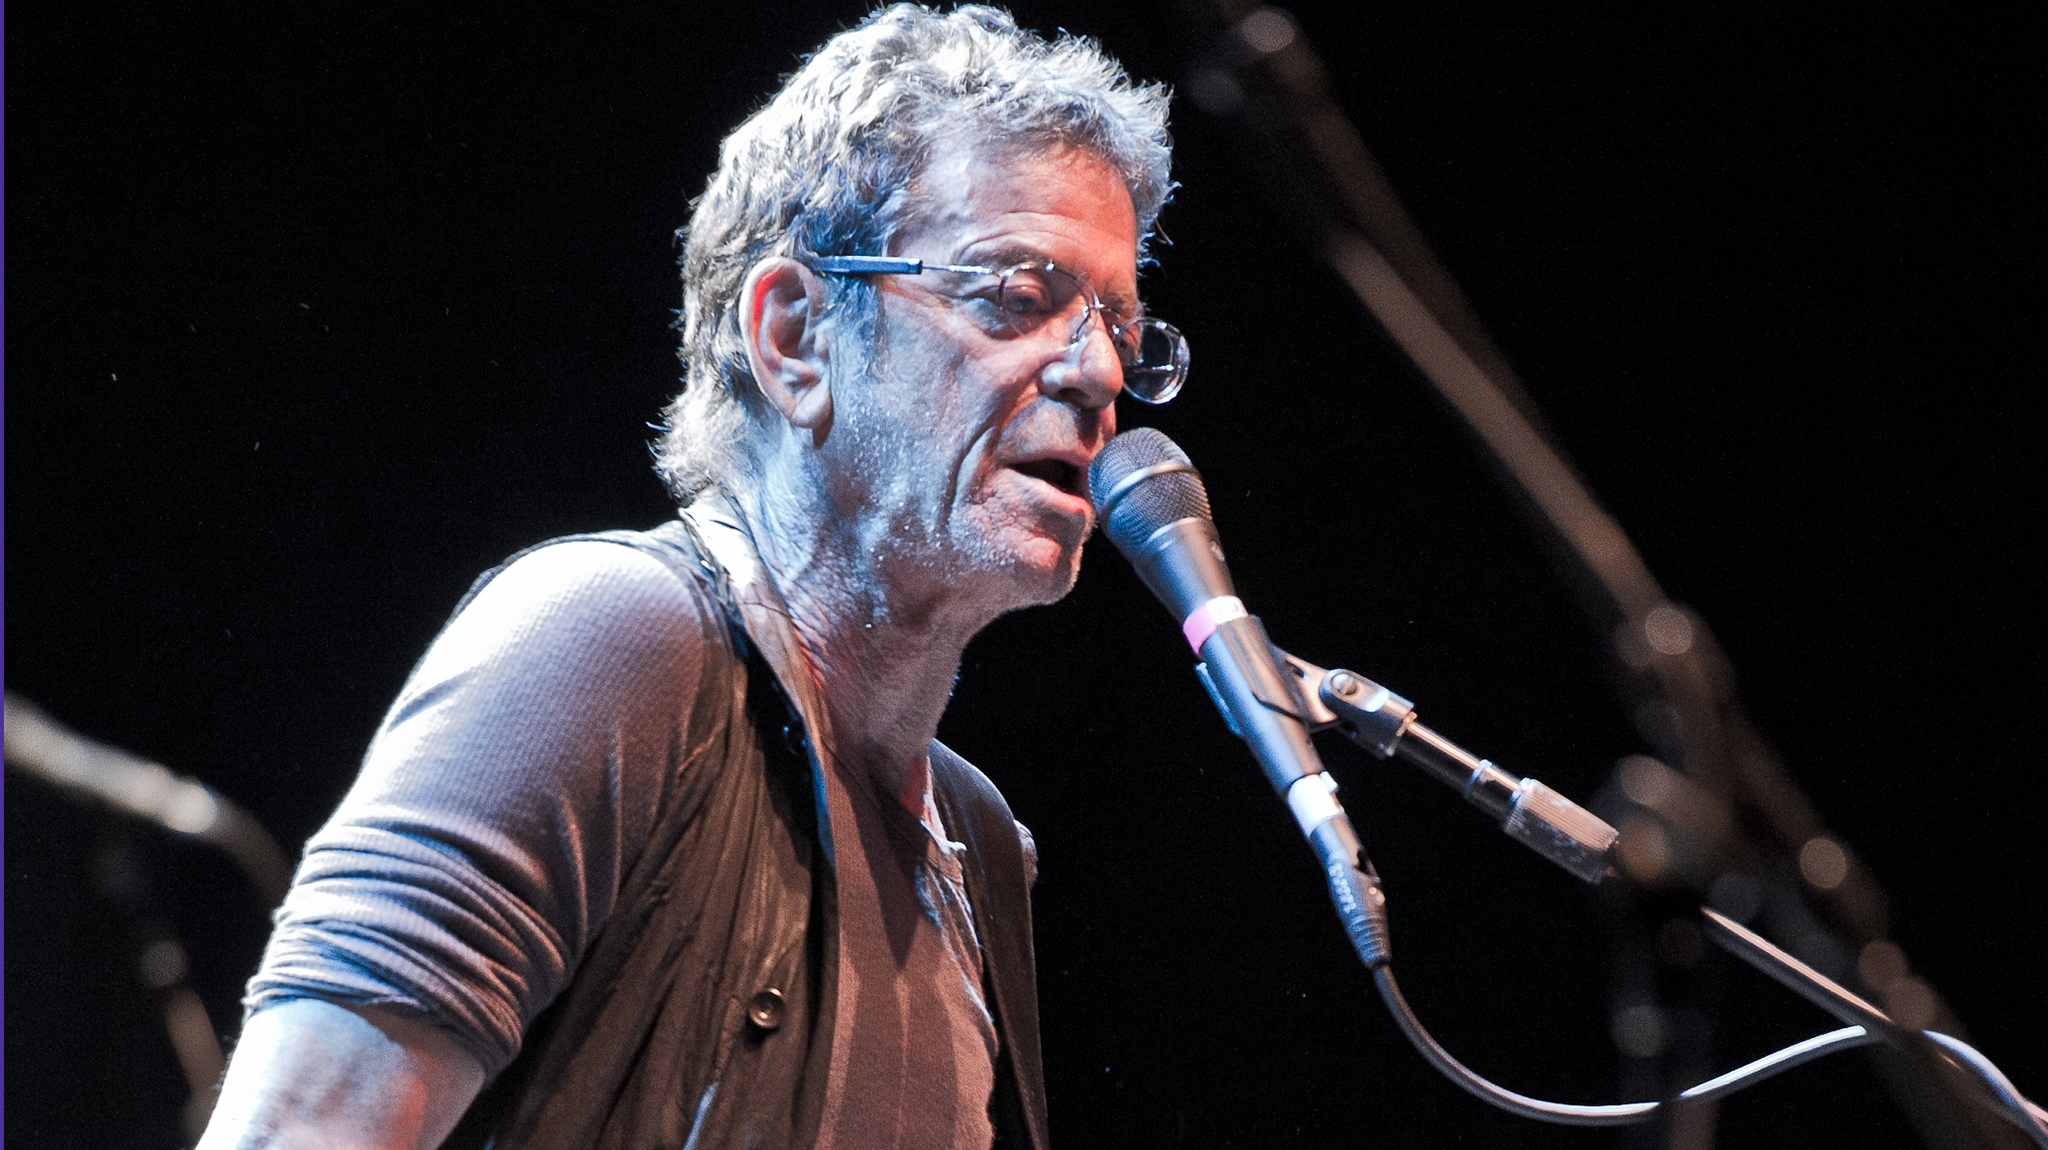 Lou Reed passes away, stars react on Twitter.